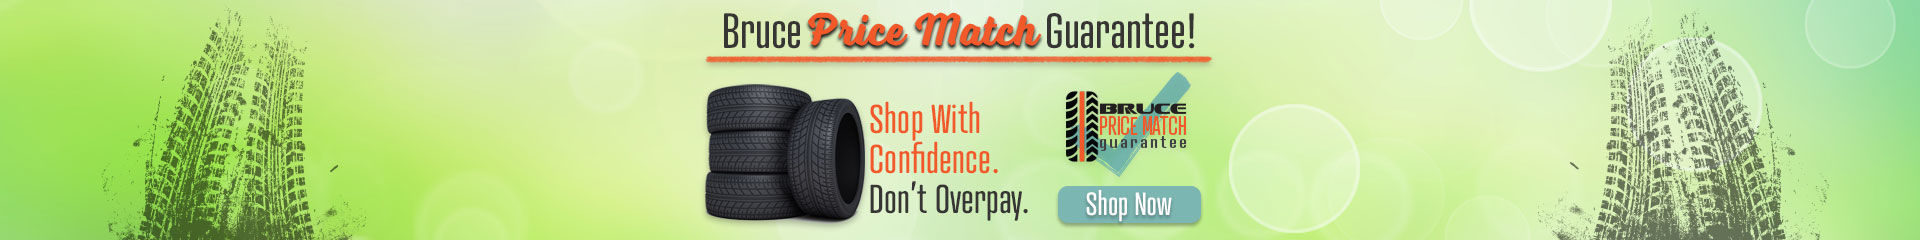 Bruce Tire Price Match Guarantee